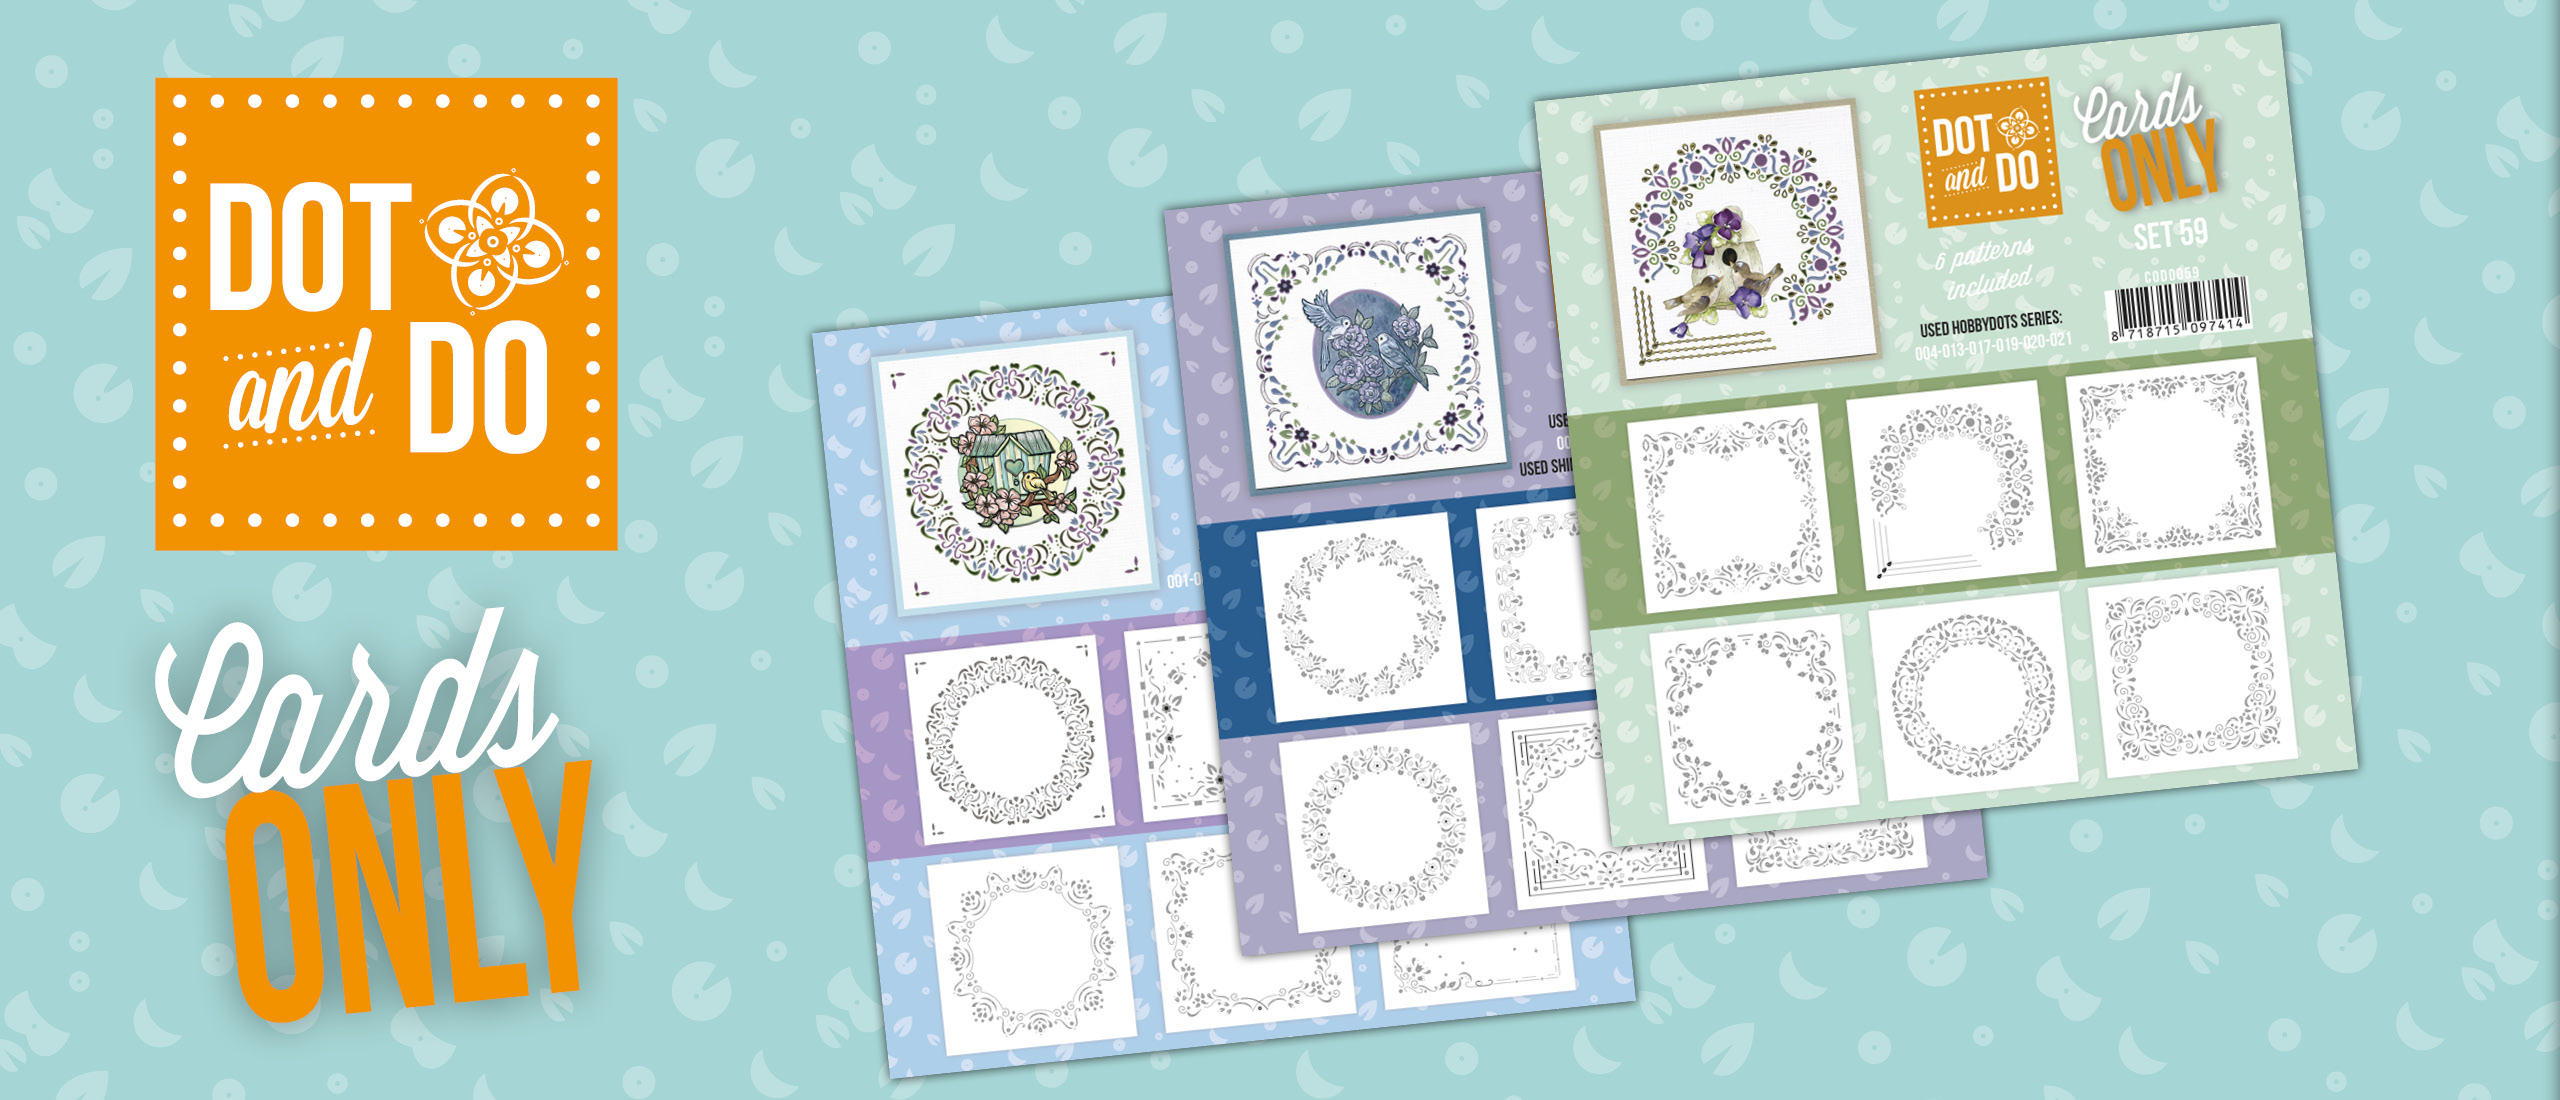 Dot and Do - Cards Only - Set 57 t/m 59 CODO057-CODO059